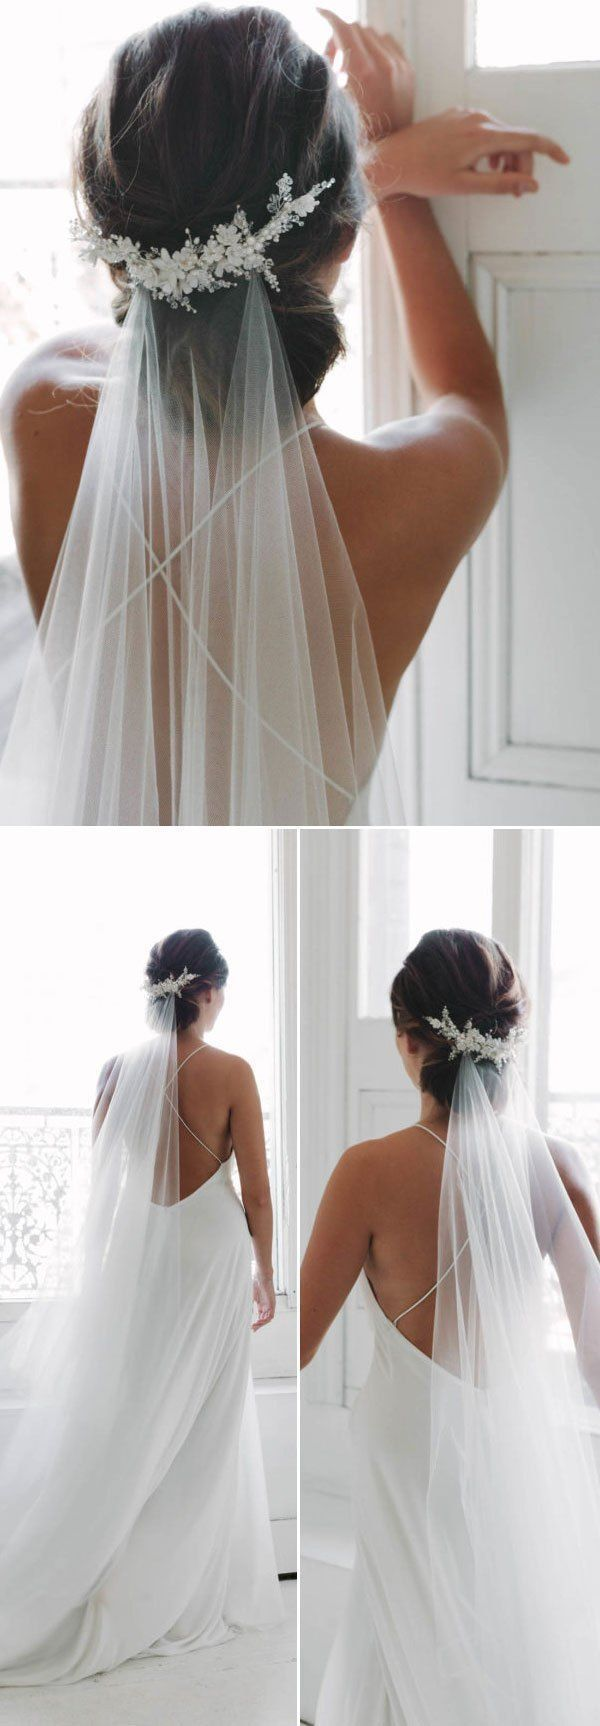 VERY elegant and romantic! Perfect for a traditionnal wedding! Top 20 Wedding Ha